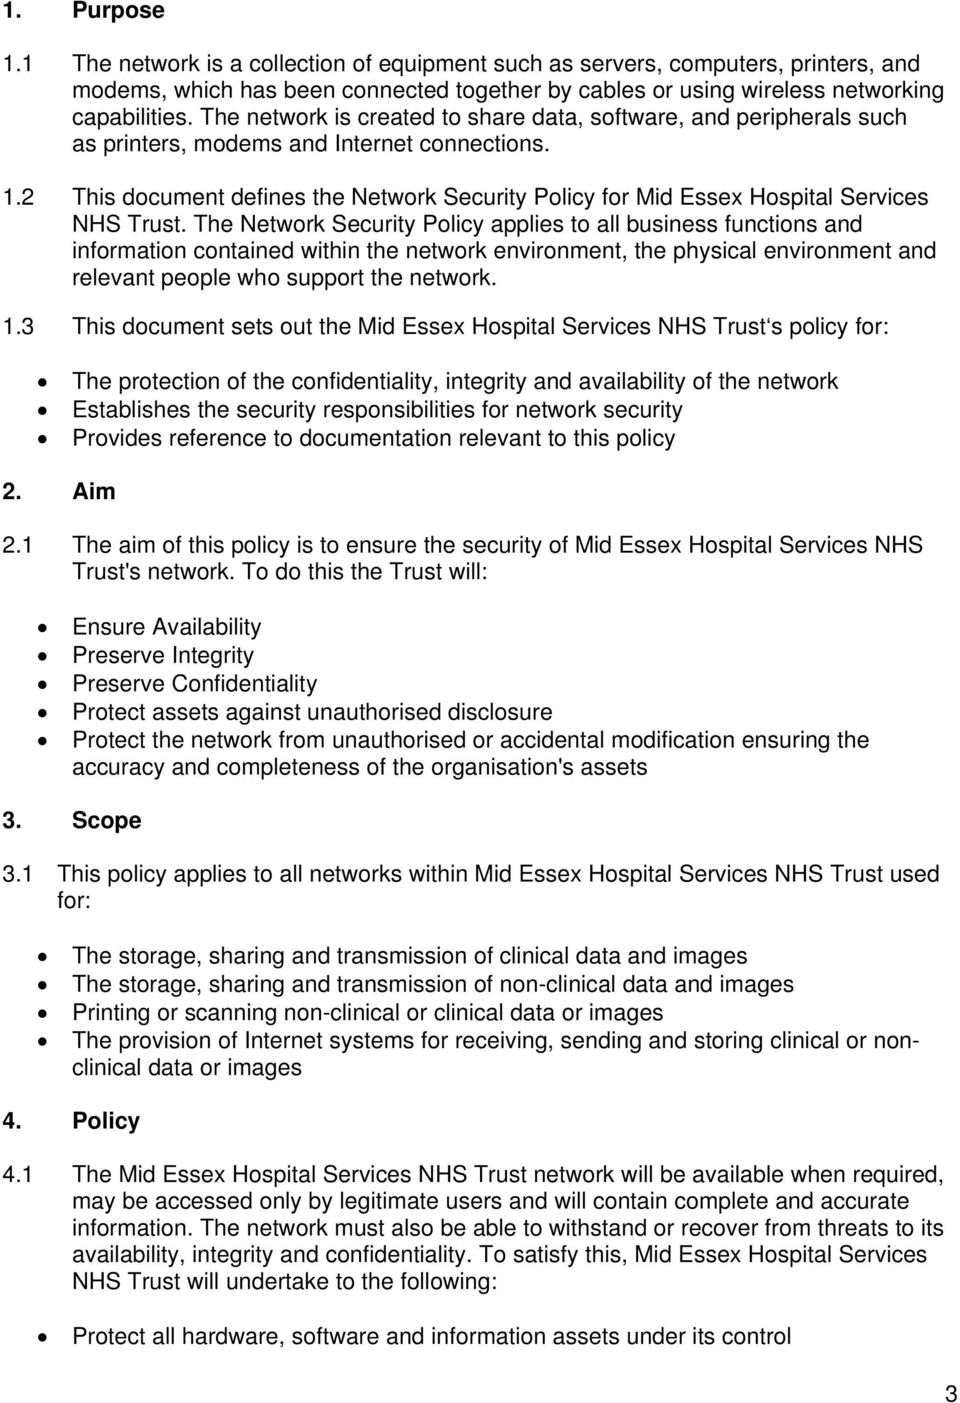 2 This document defines the Network Security Policy for Mid Essex Hospital Services NHS Trust.